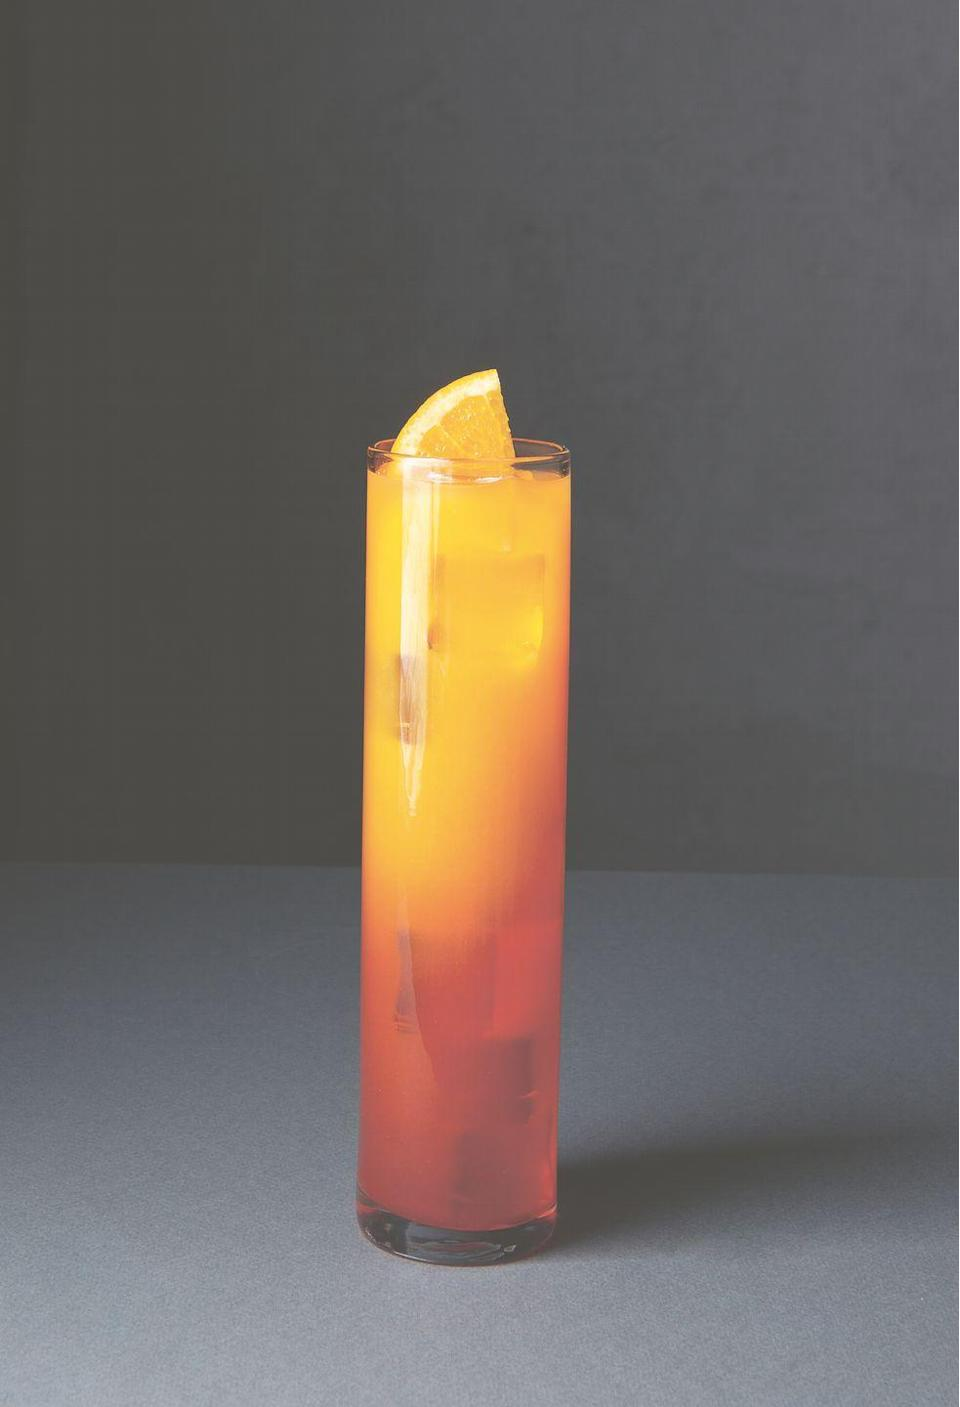 """<p>""""A staple of the 1970s, but likely created much earlier, the Tequila Sunrise was popularized by Mick Jagger after he was served one at the kick-off party for the Rolling Stones' U.S. tour,"""" writes Adrienne Stillman in <em><a href=""""https://www.amazon.com/Spirited-Cocktails-Recipes-Continents-Countries/dp/1838661611"""" rel=""""nofollow noopener"""" target=""""_blank"""" data-ylk=""""slk:Spirited: Cocktails From Around the World"""" class=""""link rapid-noclick-resp"""">Spirited: Cocktails From Around the World</a></em>. """"The Grenadine at the bottom makes the drink look like a sunrise."""" This classic tequila cocktail is thought to have been created in Sausalito, California, some time between the 1920s–1940s and has been a bar-menu staple ever since.</p><p><strong>Ingredients:</strong></p><p>1/2 ounce (15 ml) Grenadine<br>2 ounces (60 ml) tequila<br>3 ounces (90 ml) fresh orange juice<br>Orange half wheel, to garnish</p><p><strong>Directions:</strong></p><p>Add the Grenadine to a Collins or highball glass. Add ice, tequila, and orange juice. Stir gently to combine. Garnish with an orange half wheel.<br></p><p><em>Reprinted from <a href=""""https://urldefense.com/v3/__https://www.phaidon.com/store/food-cook/spirited-9781838661618/__;!!Ivohdkk!wgMkltU-PaHO4HwAVgN1ZFQIkGJX2DBDWVQcsLmV_D1J41V697waOxGzbEoMnsIgEg$"""" rel=""""nofollow noopener"""" target=""""_blank"""" data-ylk=""""slk:Spirited: Cocktails from Around the World"""" class=""""link rapid-noclick-resp"""">Spirited: Cocktails from Around the World</a> by Adrienne Stillman. © 2020 Phaidon Press</em><br></p>"""